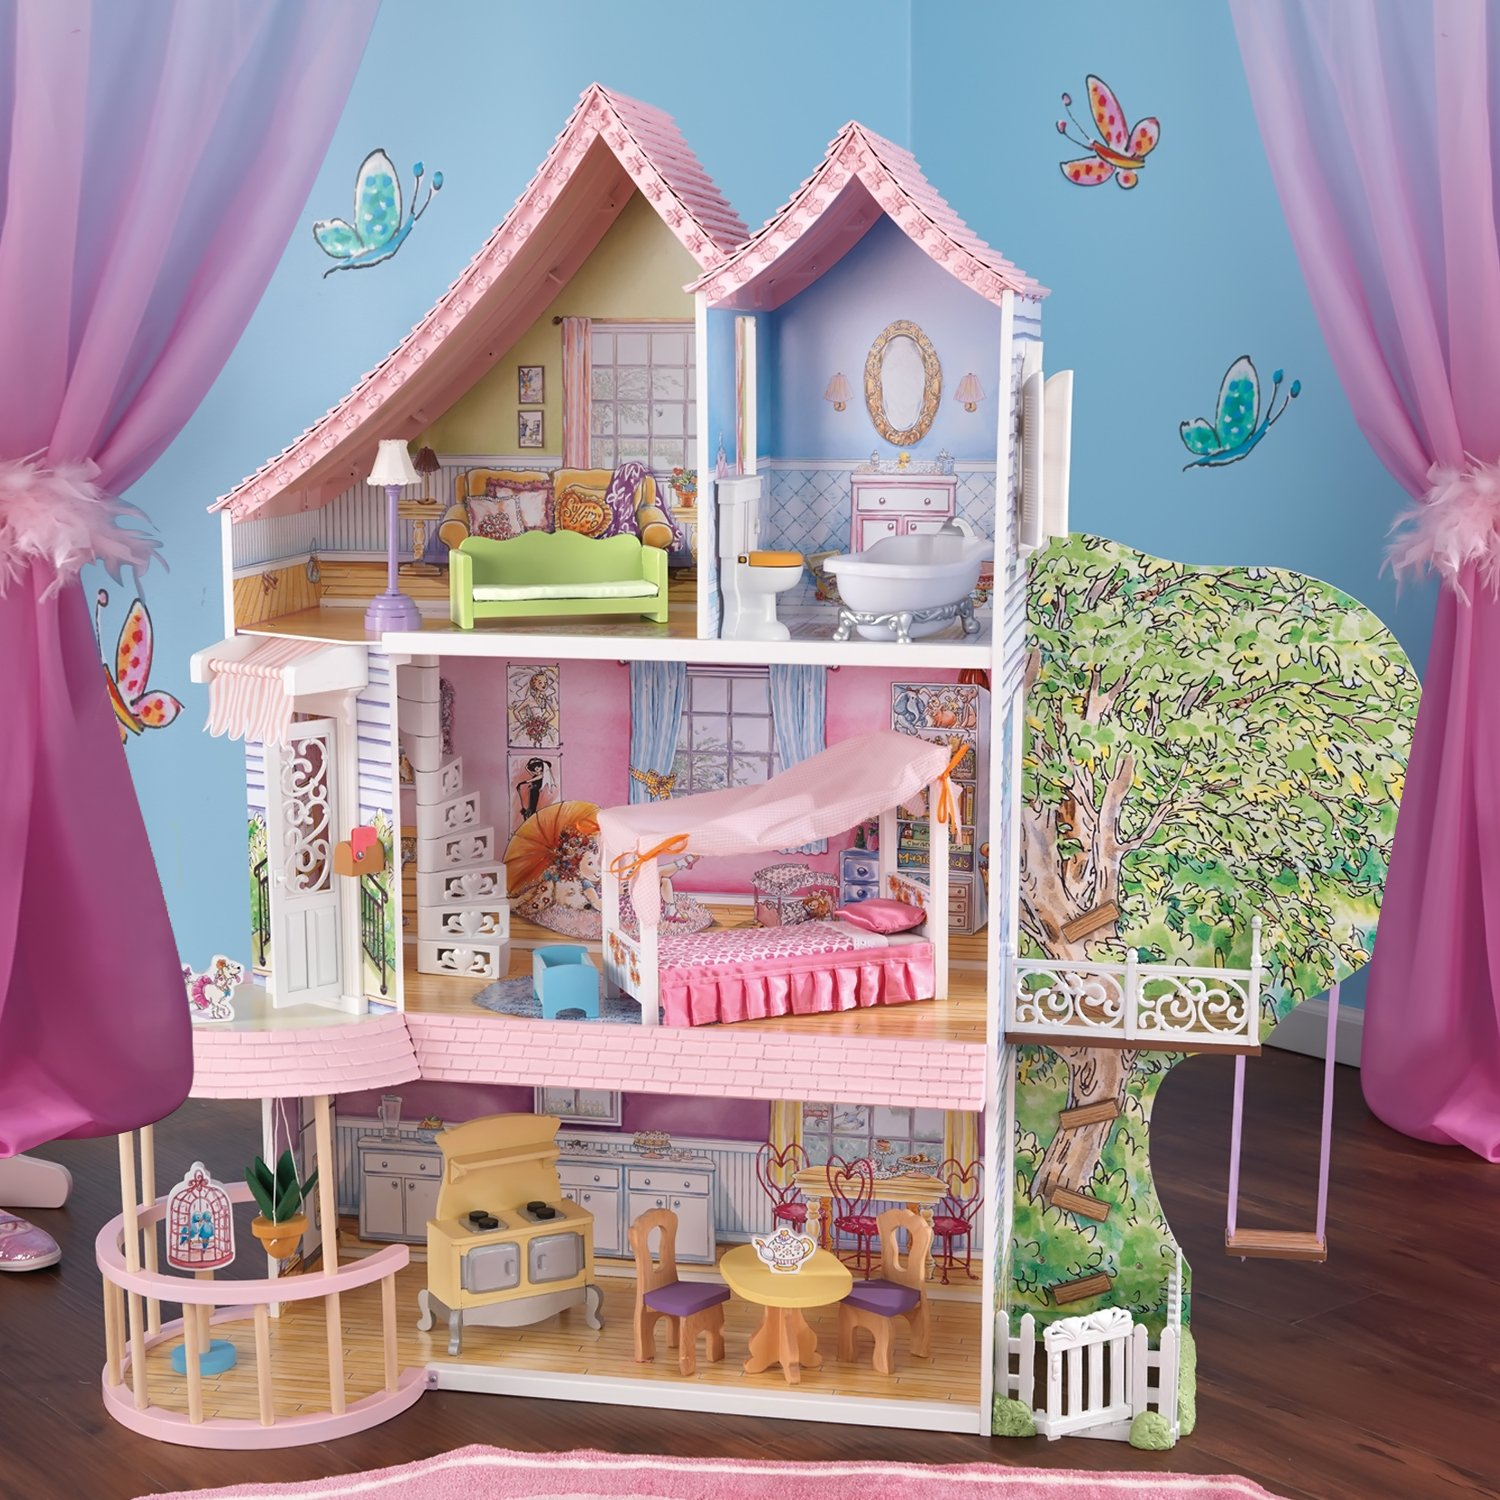 KidKraft Home Indoor Kids Room Decorative Fancy Nancy Dollhouse for up to 12 inch Tall dolls Play Set 15 Piece Furniture